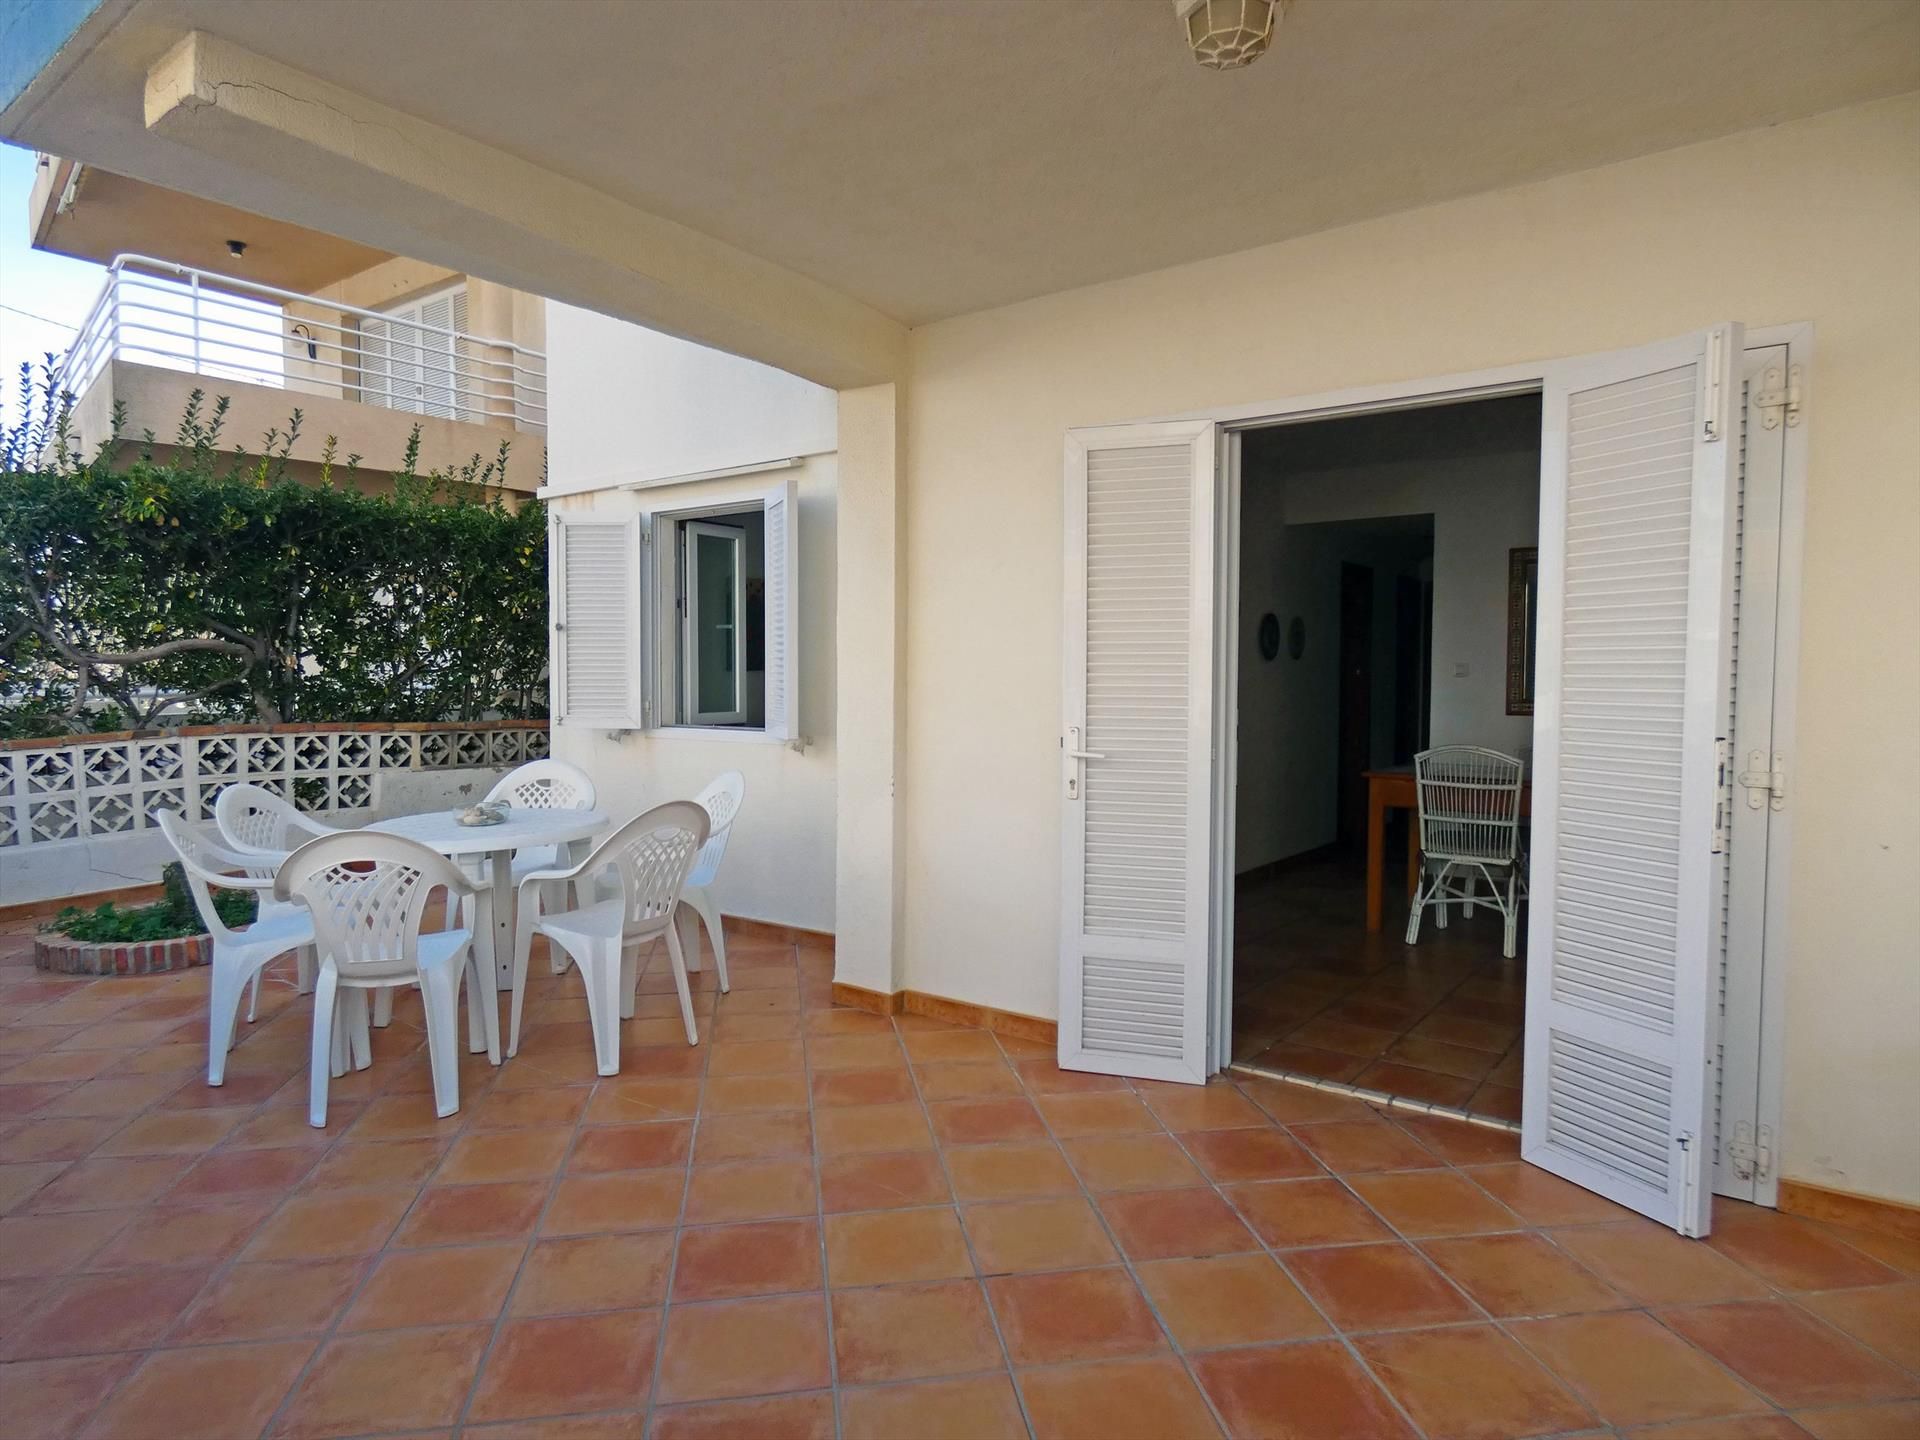 PB408 Pedro III Pau Pi,Beautiful and cheerful apartment in Oliva, on the Costa Blanca, Spain for 5 persons.....